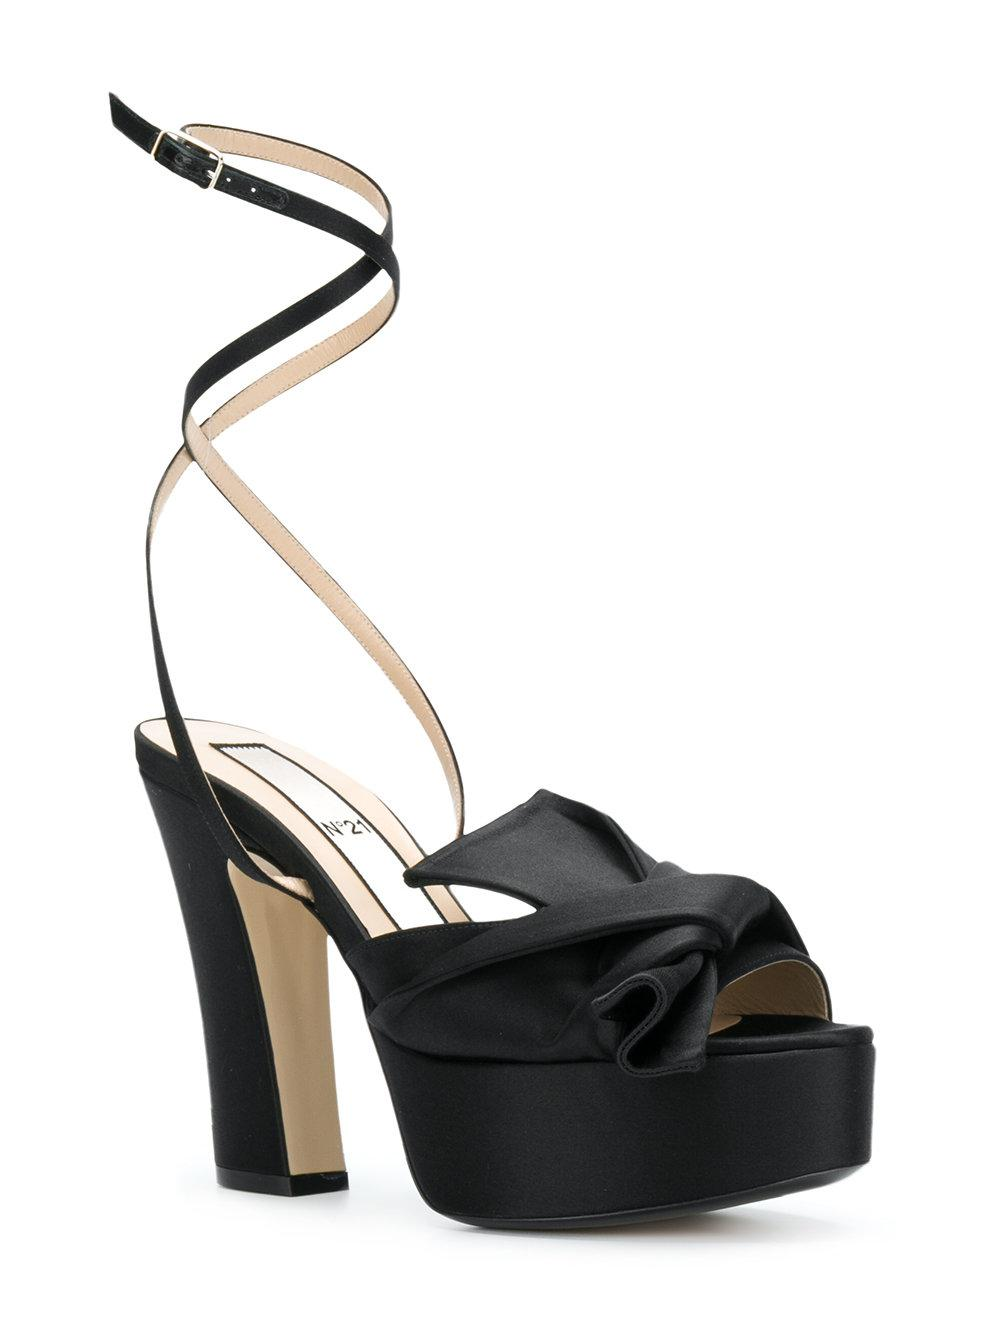 abstract bow ankle strap sandals - Black N°21 9olseRjYXZ